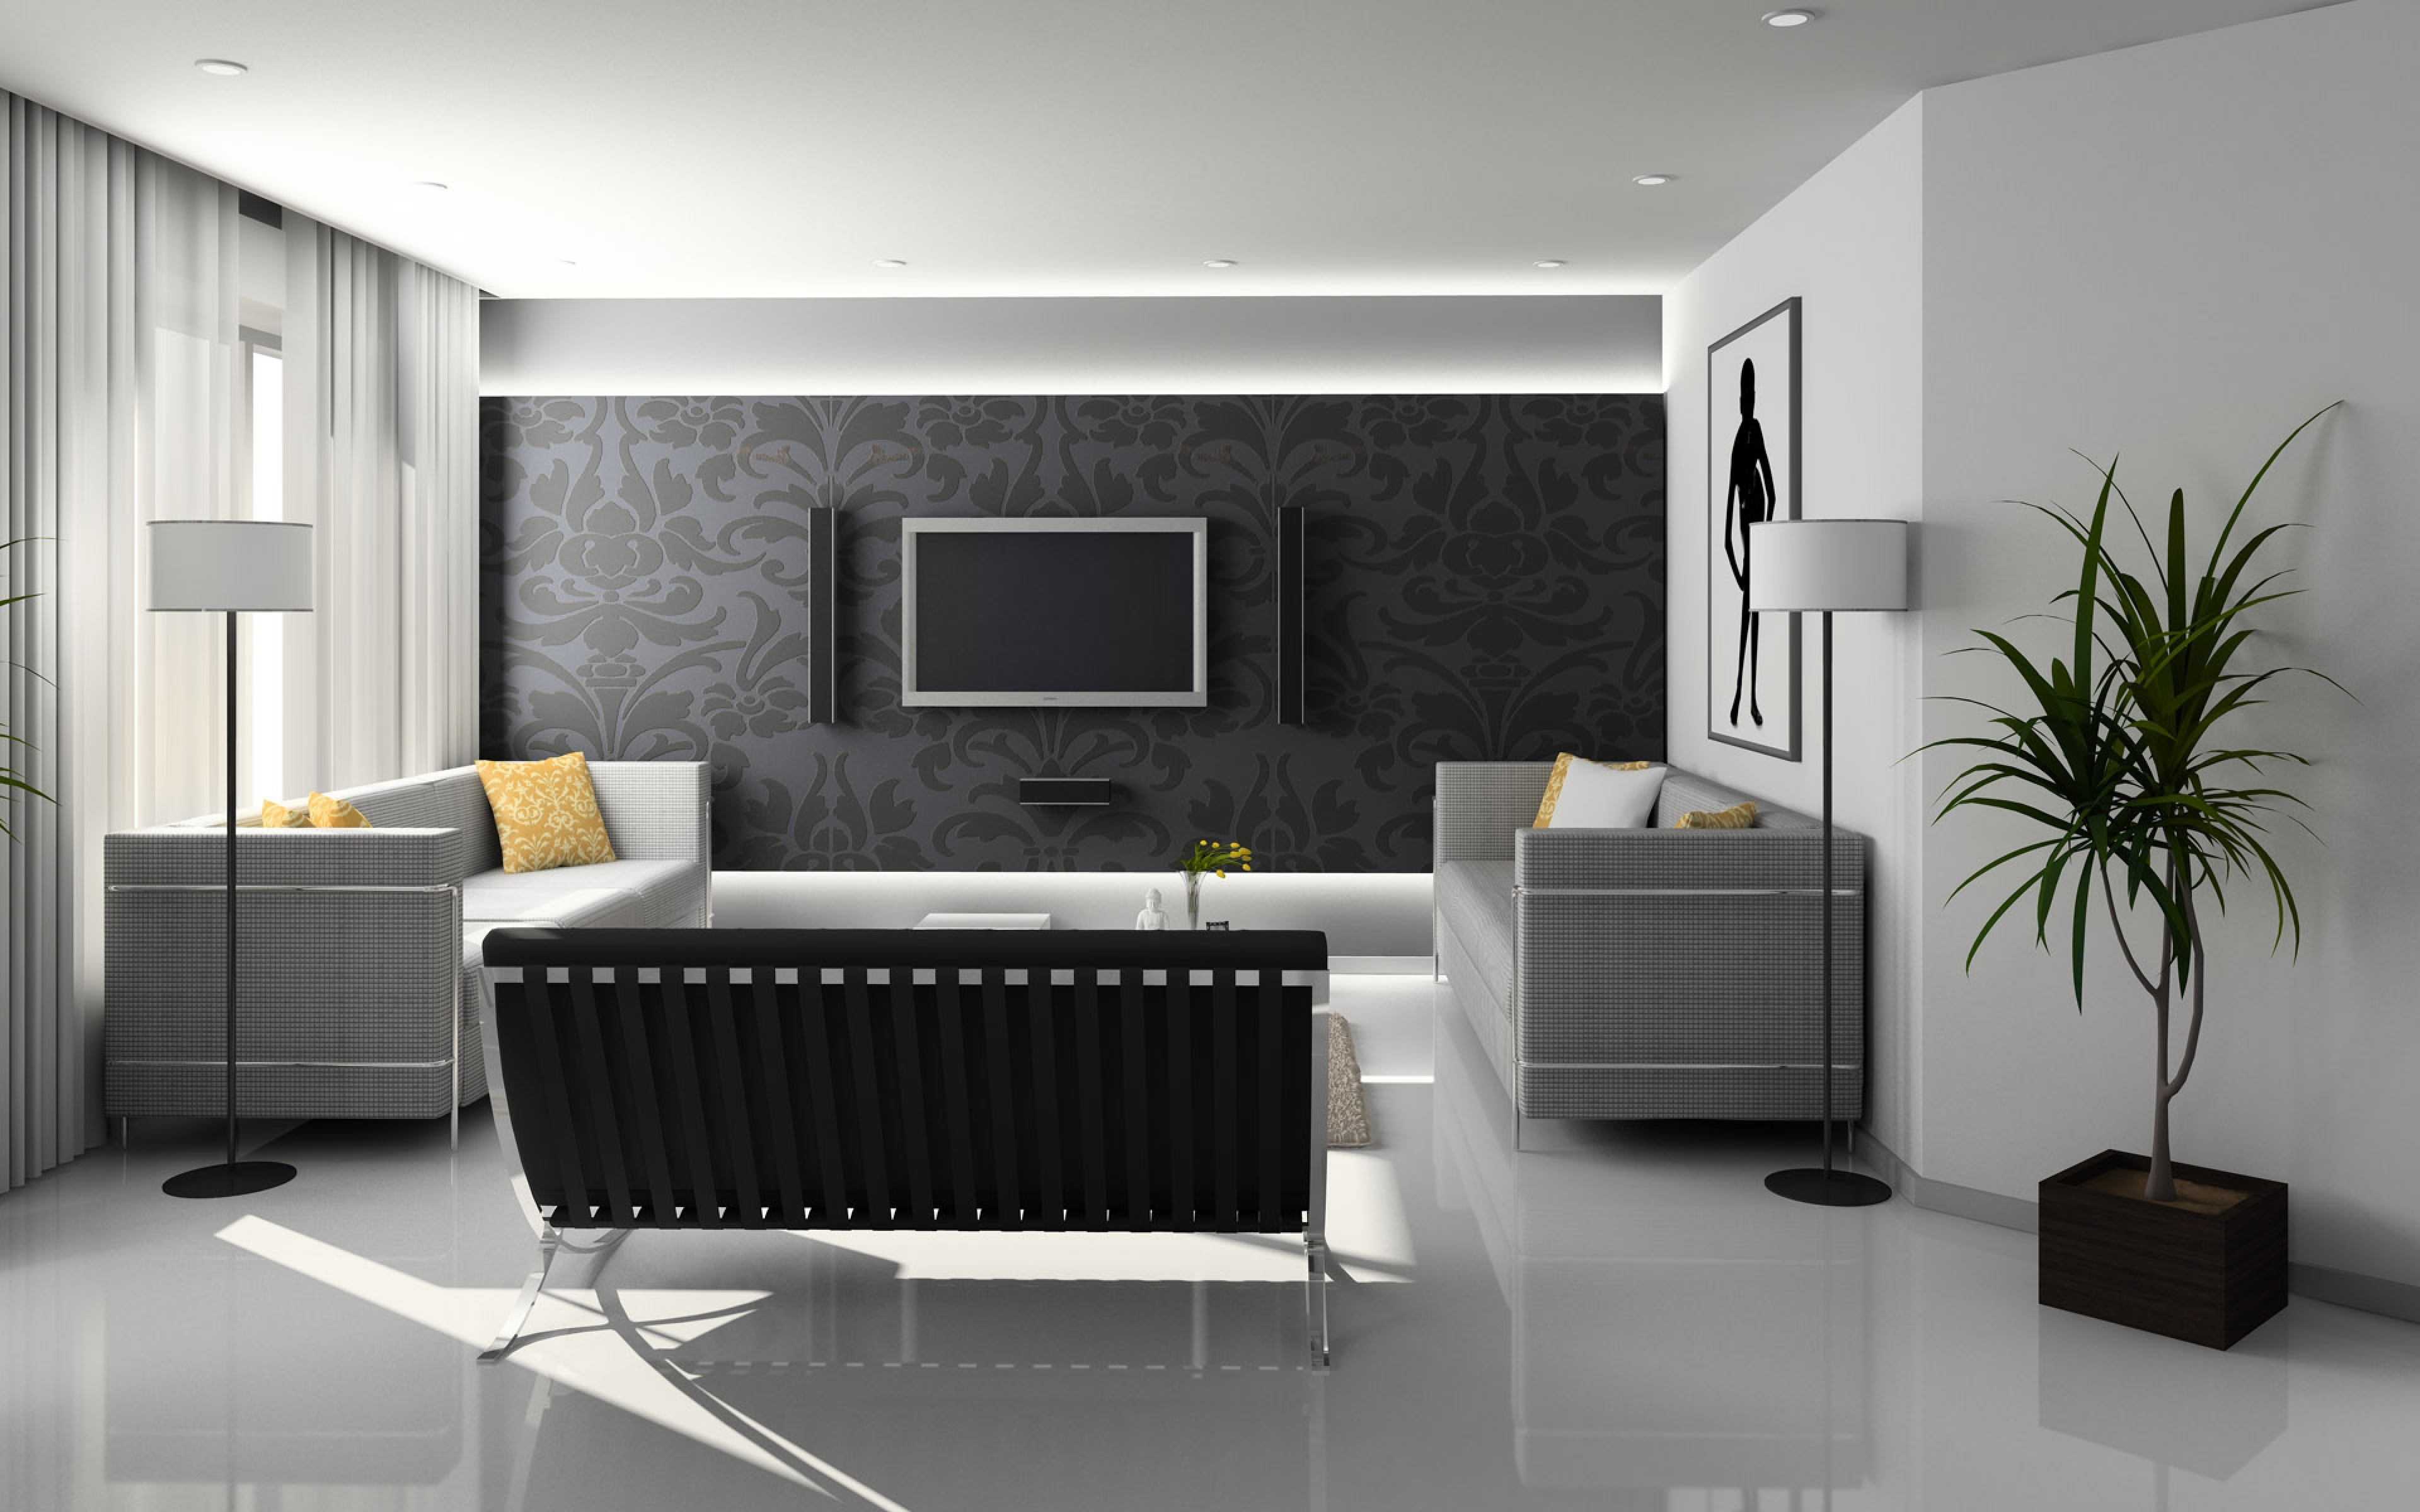 text3 Tips and ideas for wallpaper in the living room that you can use on your walls